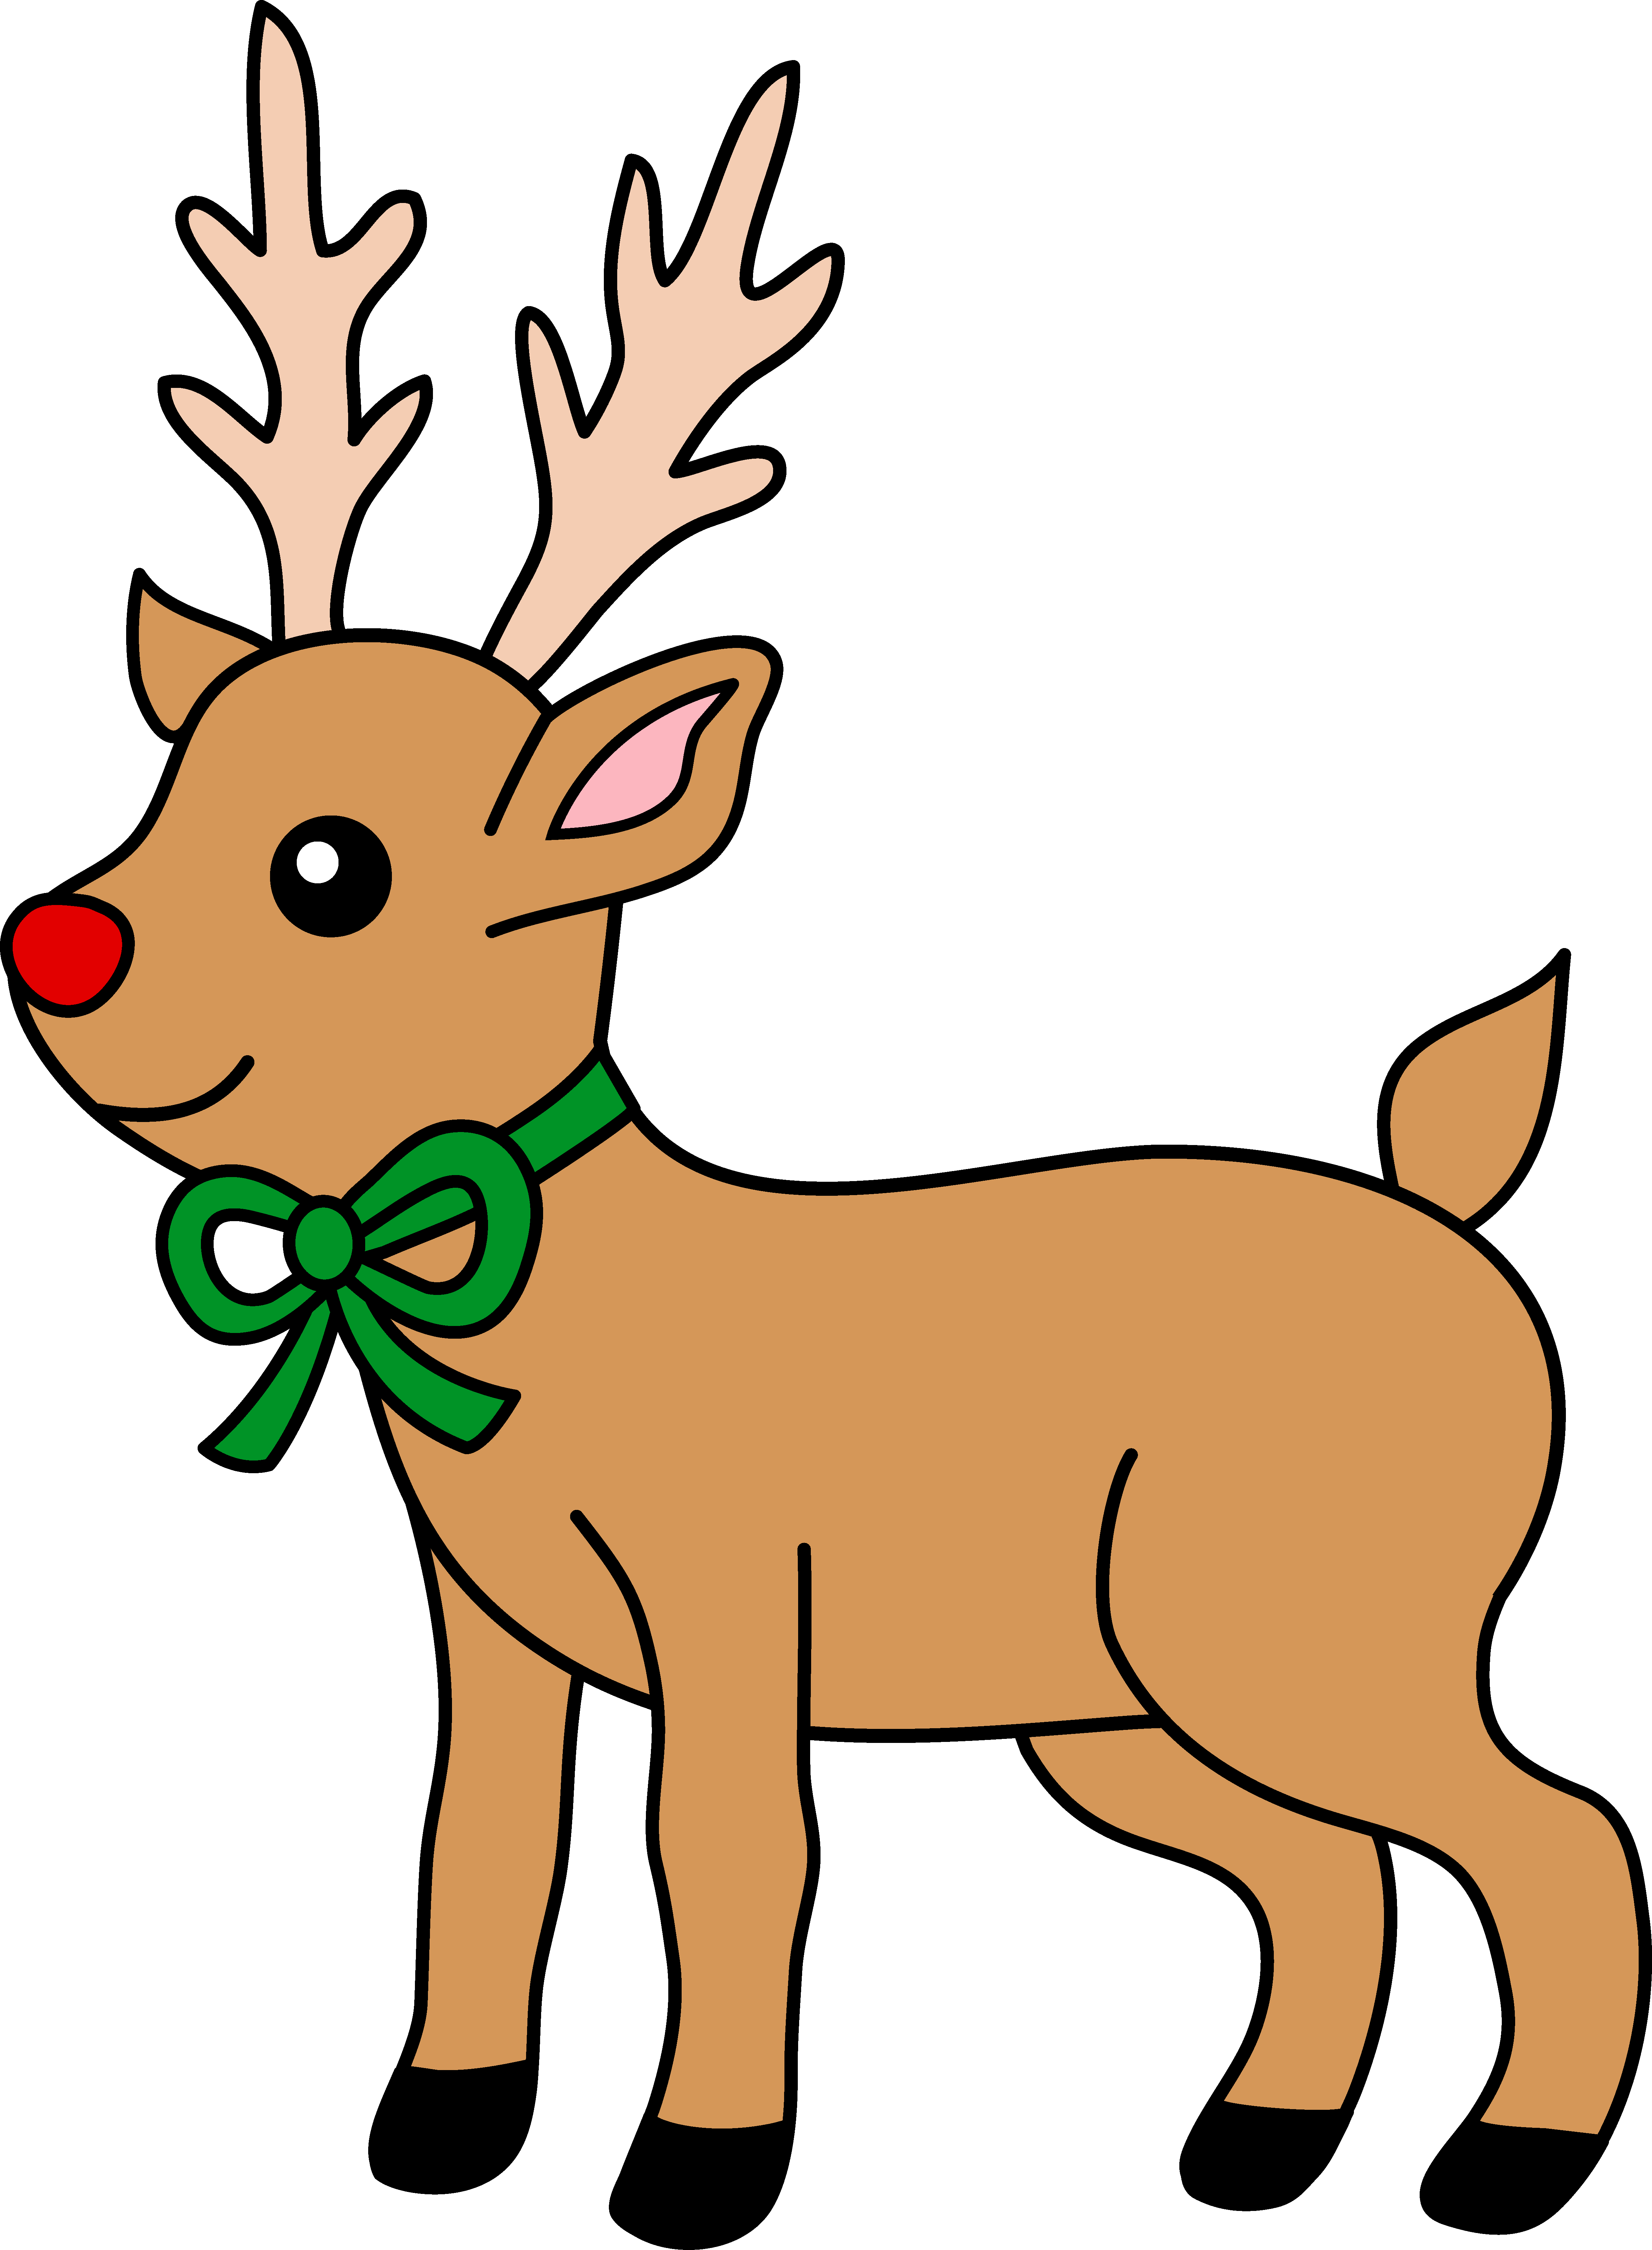 ... red-nosed reindeer Rudolp - Rudolph The Red Nosed Reindeer Clipart